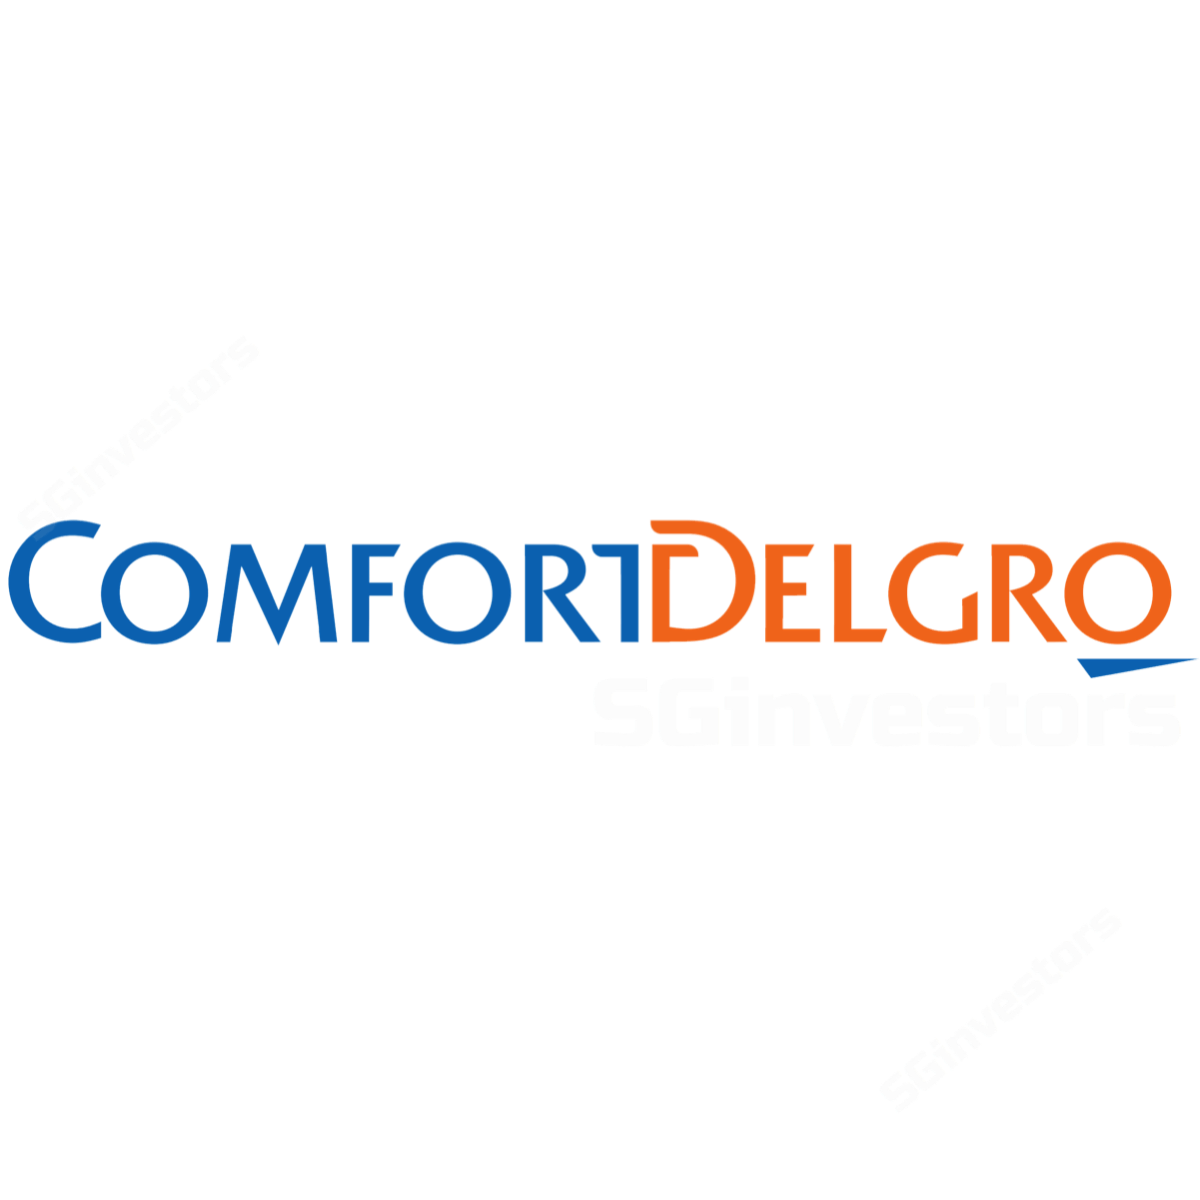 ComfortDelGro (CD SP) - Maybank Kim Eng 2017-08-14: Discomfort In 2017